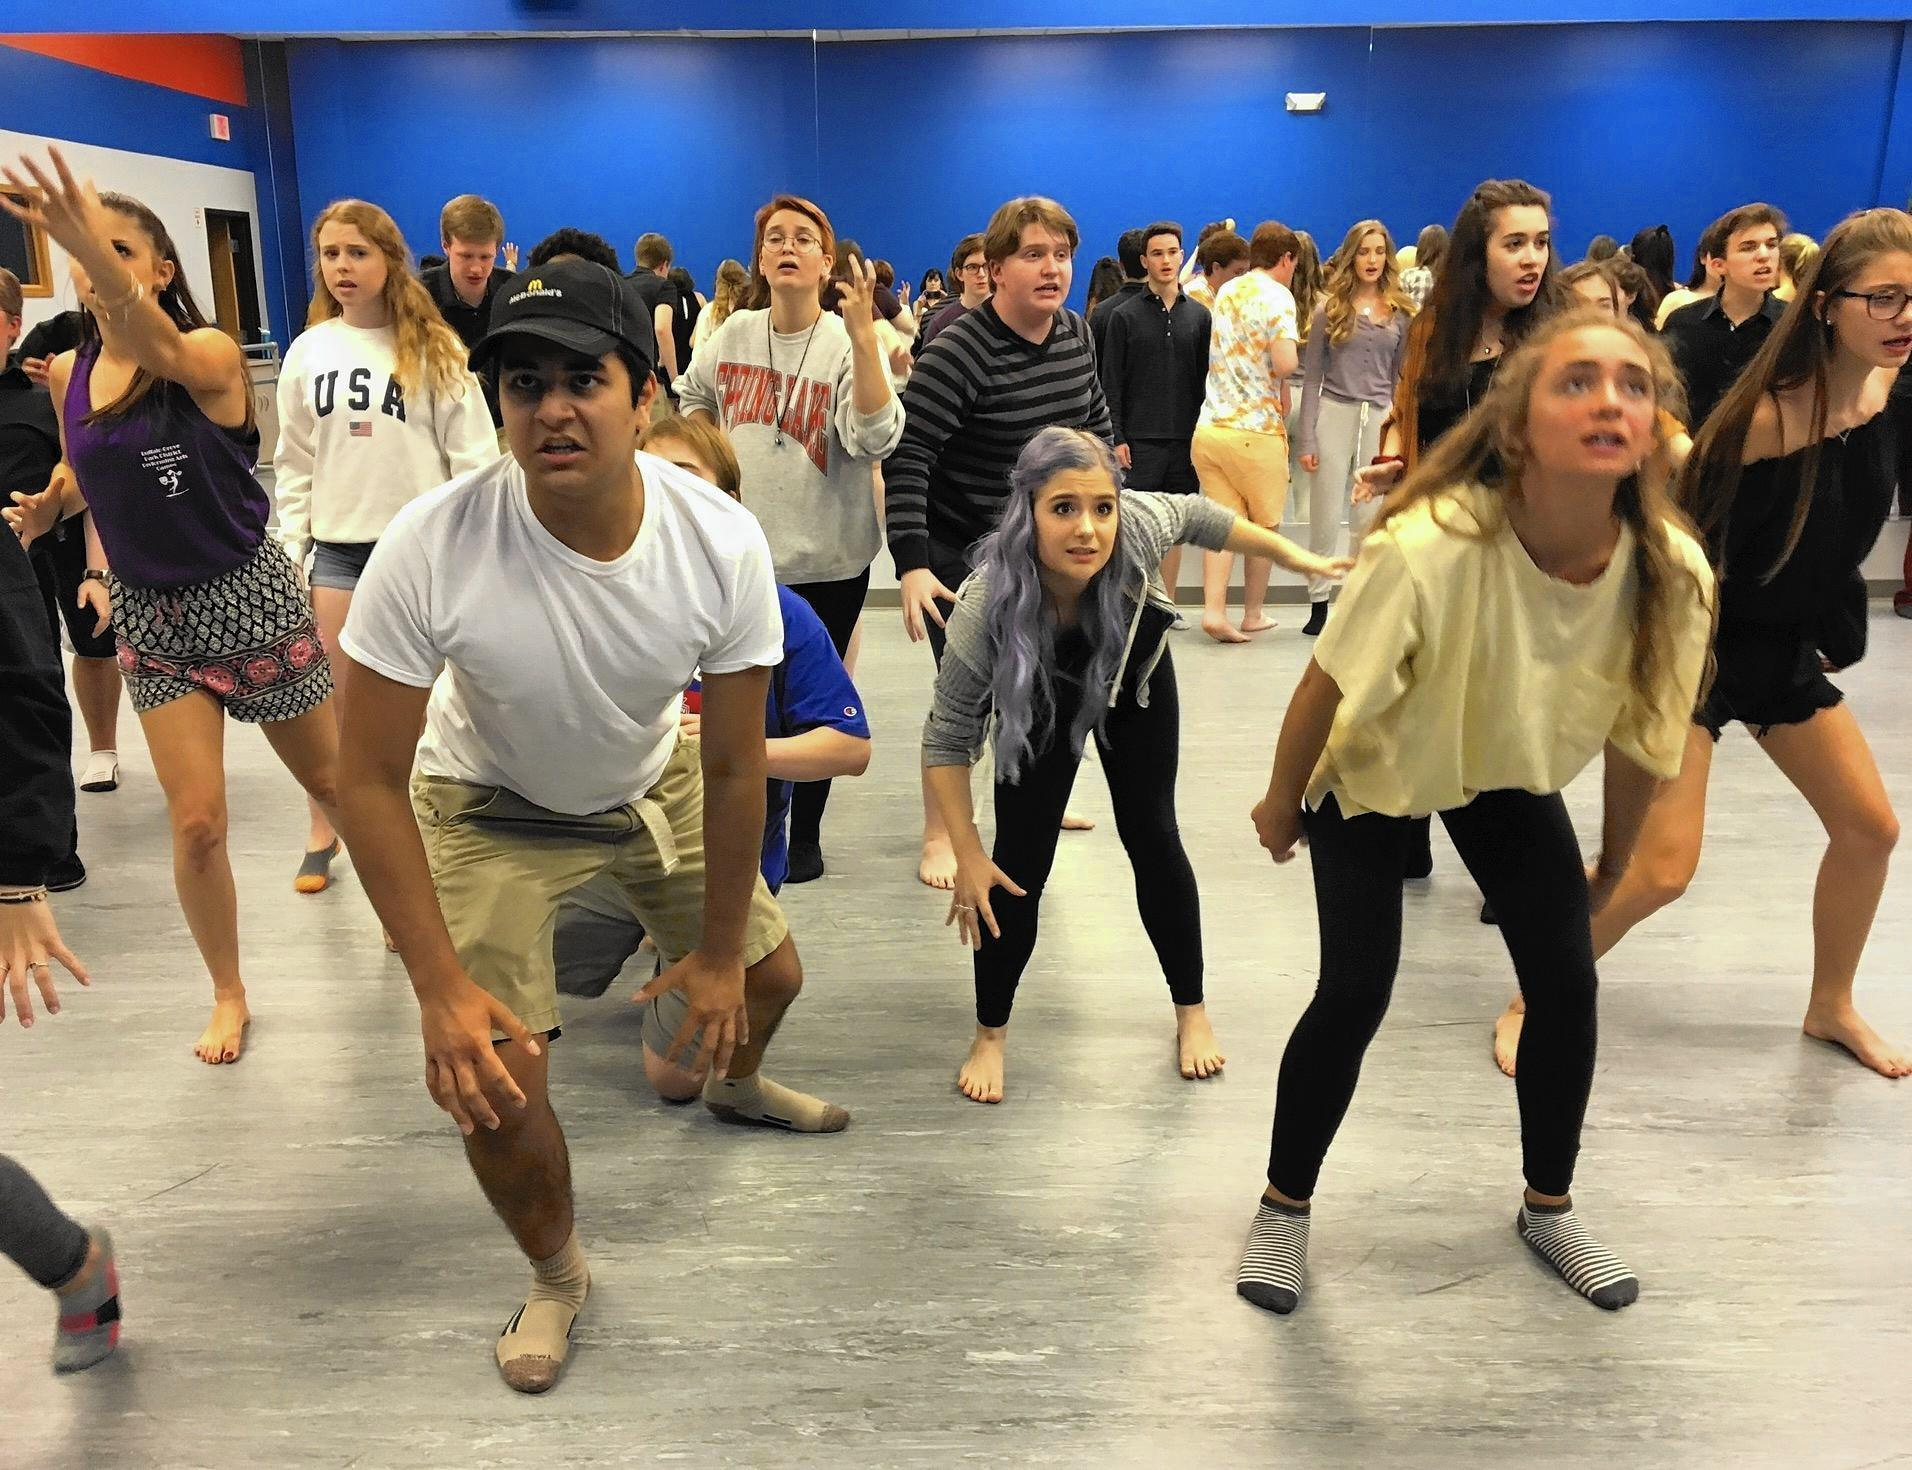 'Hunchback of Notre Dame' comes to Nazareth Academy - The Doings La Grange